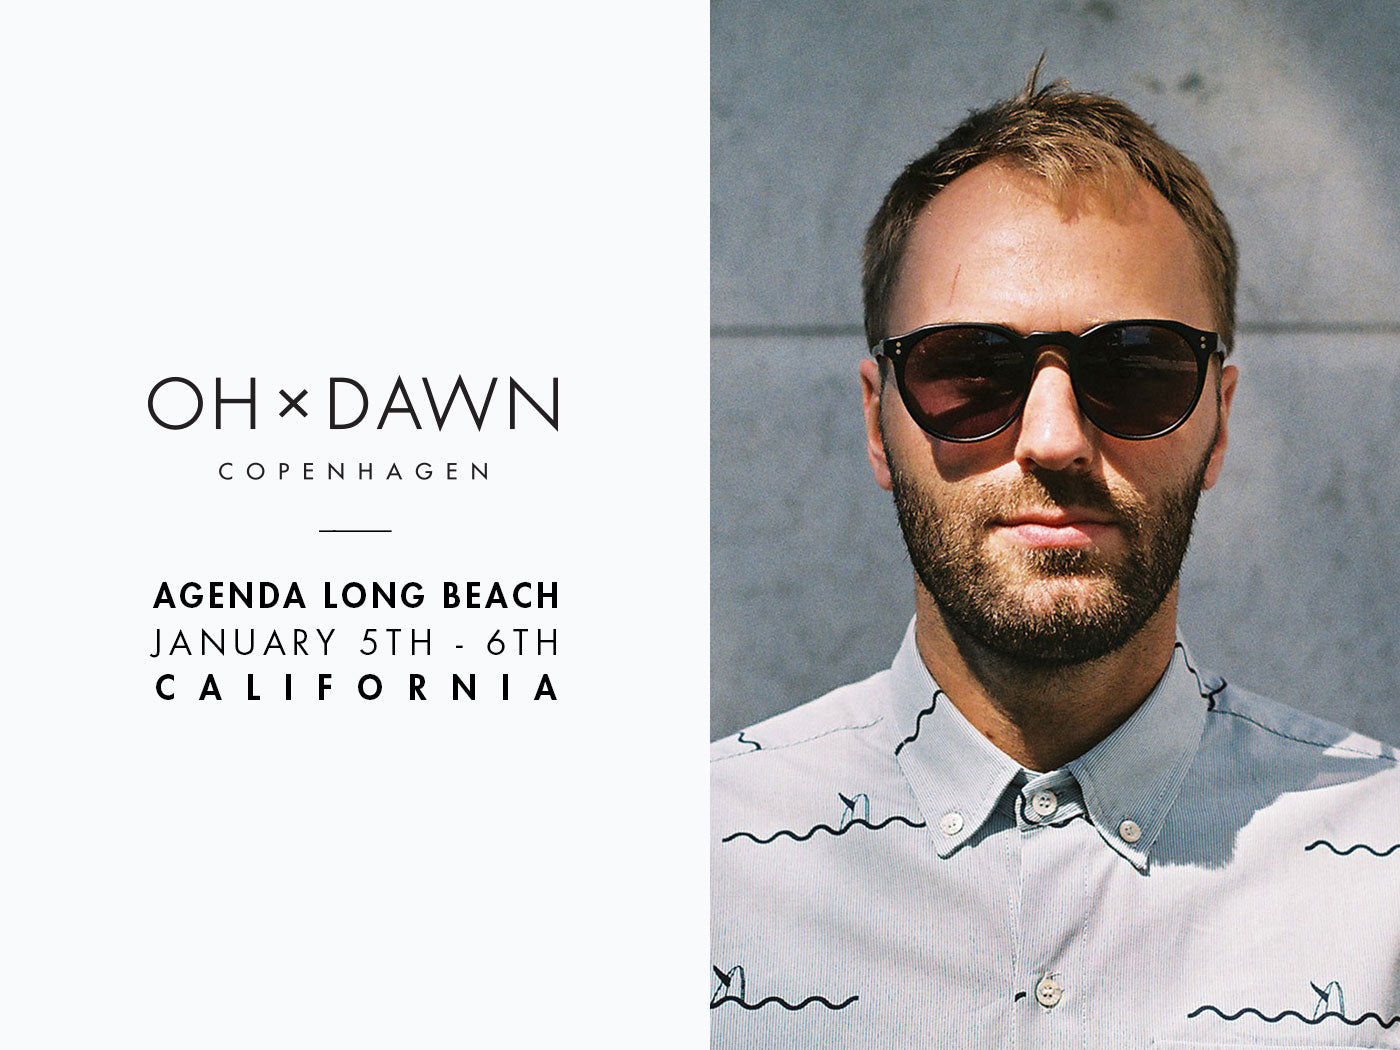 oh dawn agenda show long beach california